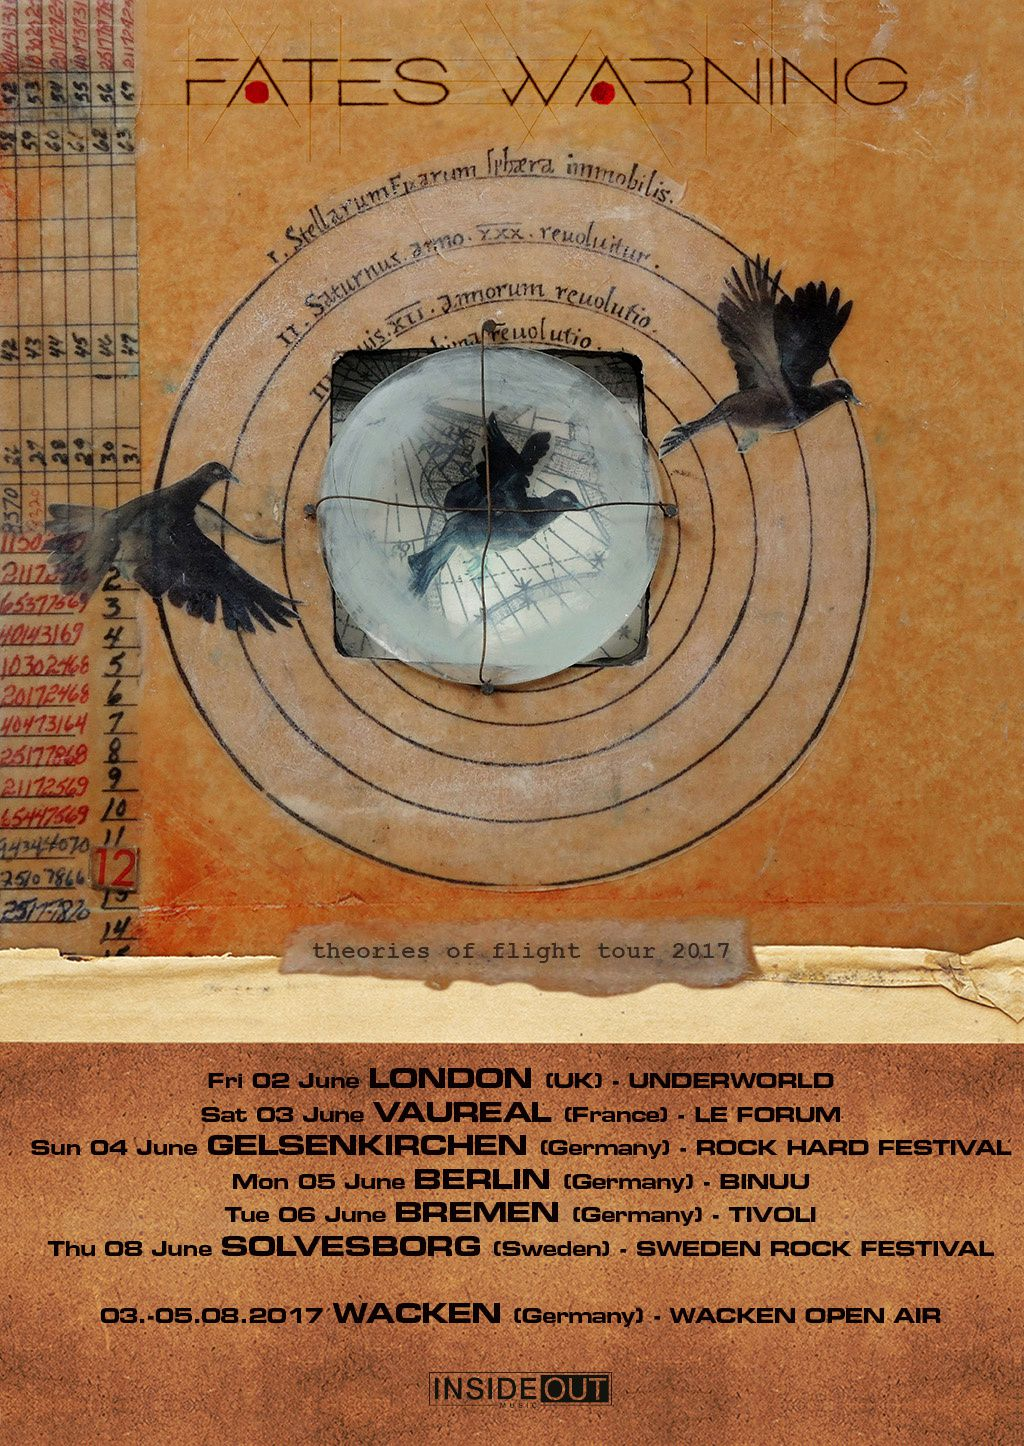 Additional FATES WARNING tour dates for Europe